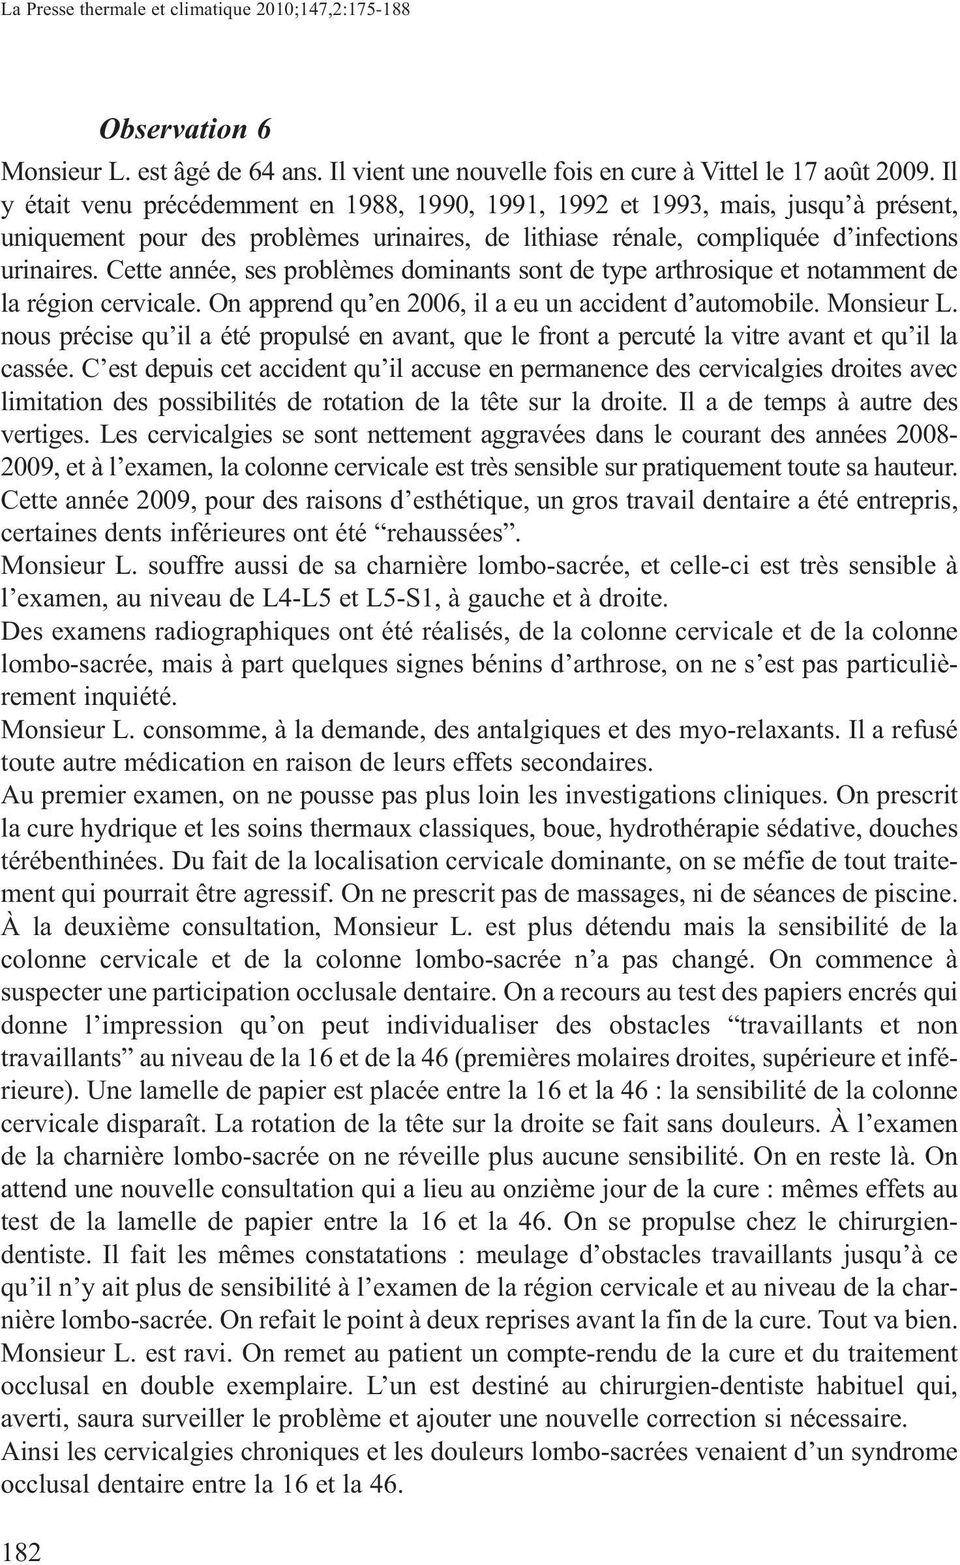 Cette année, ses problèmes dominants sont de type arthrosique et notamment de la région cervicale. On apprend qu en 2006, il a eu un accident d automobile. Monsieur L.